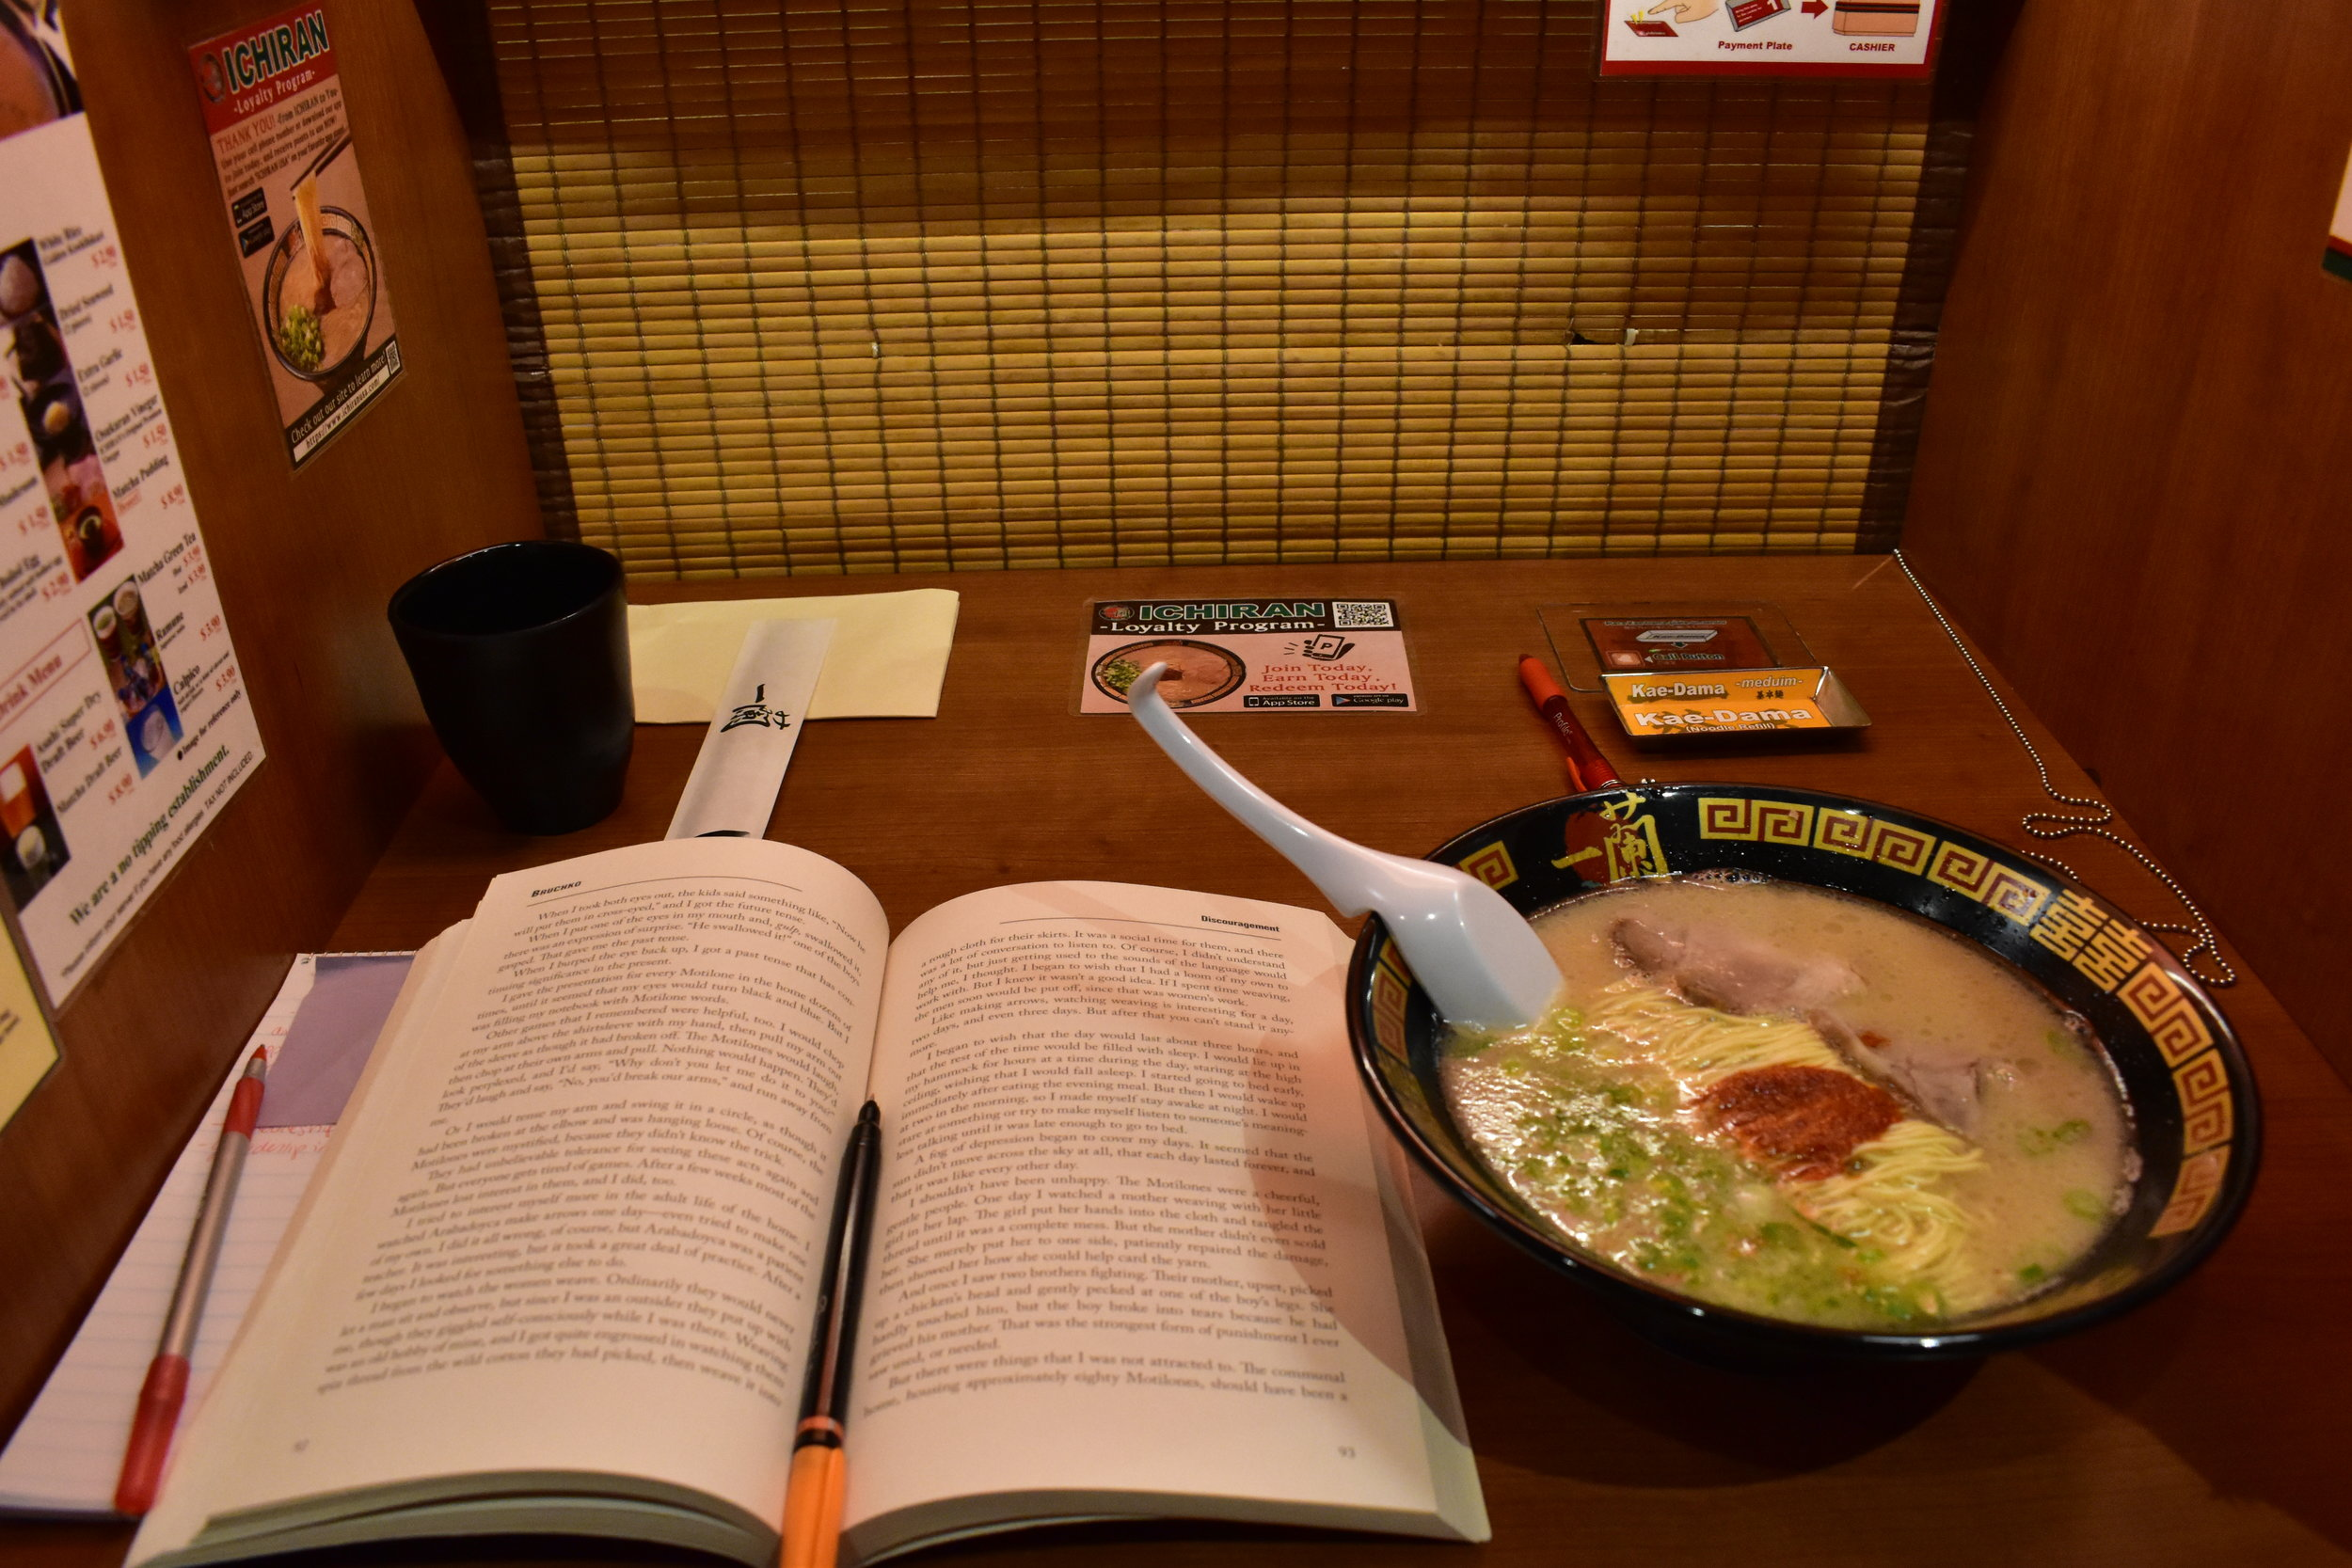 Customers order ramen with a piece of paper and a press of a button. || Photo credit to Megan Capone